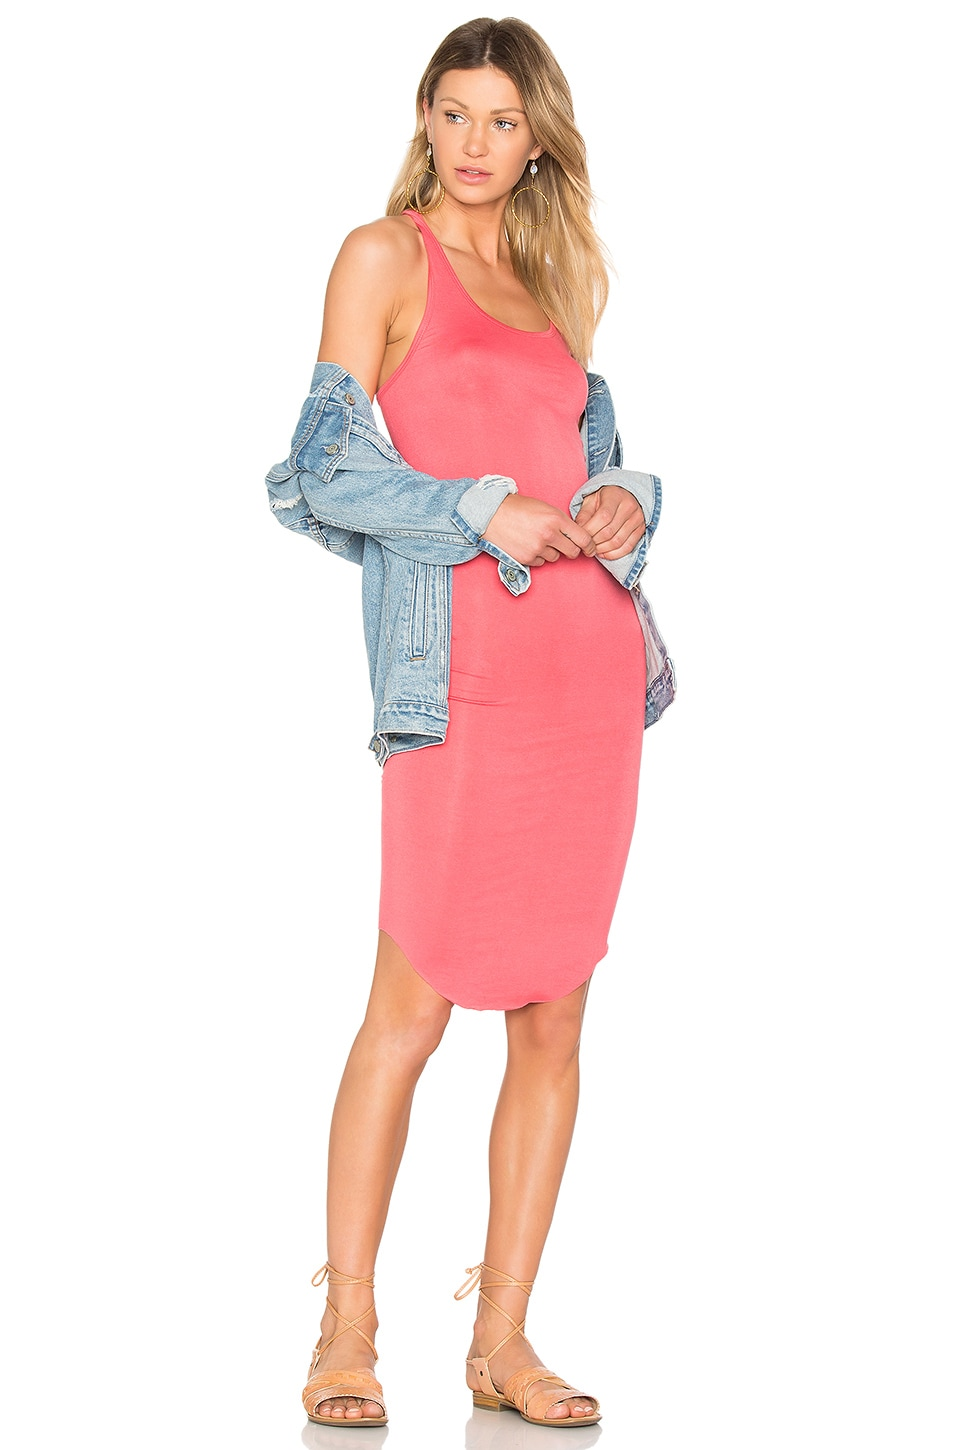 BLQ BASIQ Racer Tank Dress in Coral